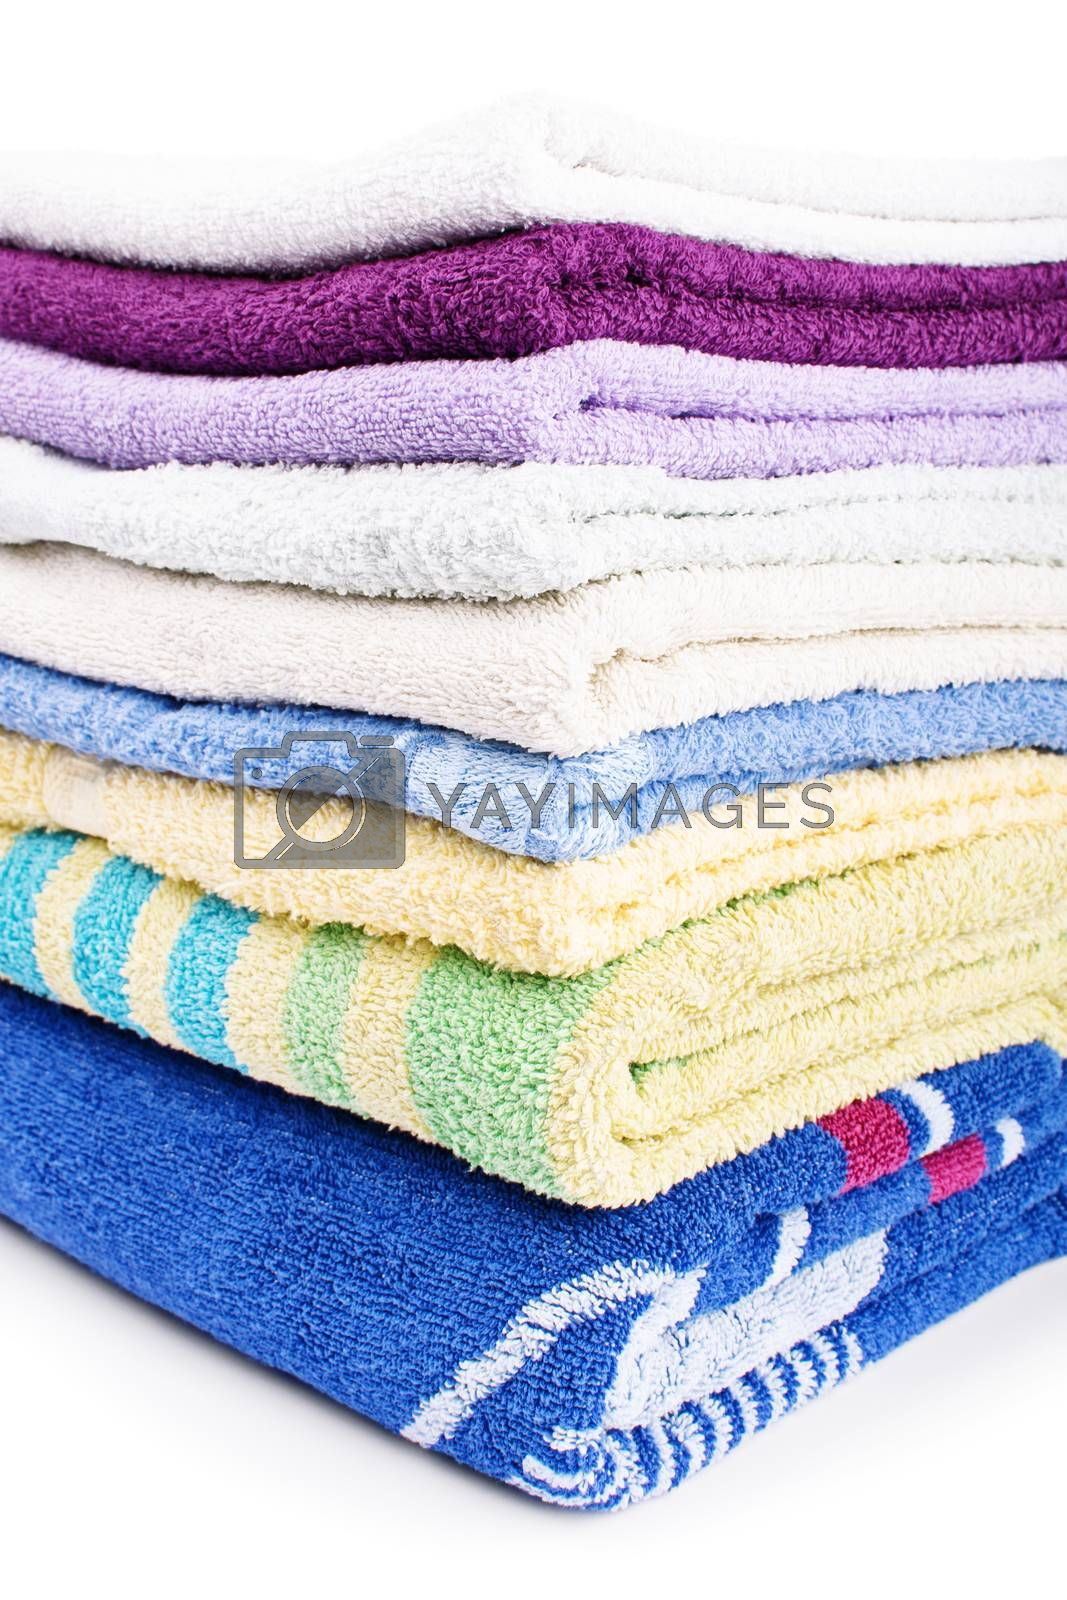 Close up shot of a pile of colorful clean bathroom towels, isolated on white background.